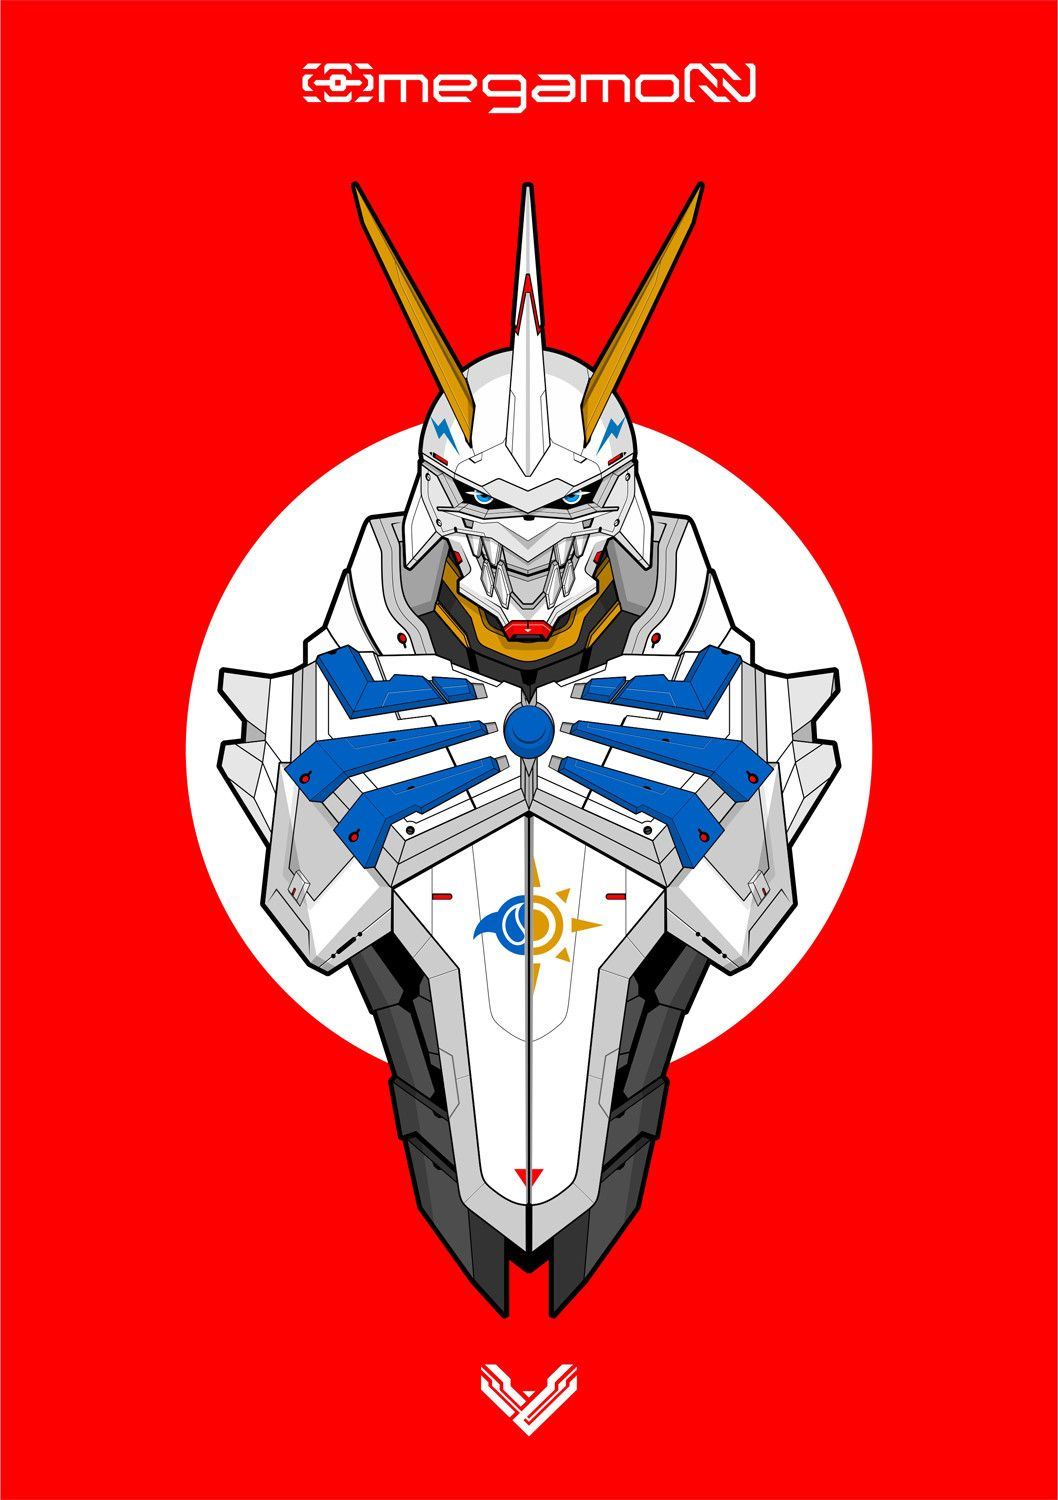 Omegamon x by